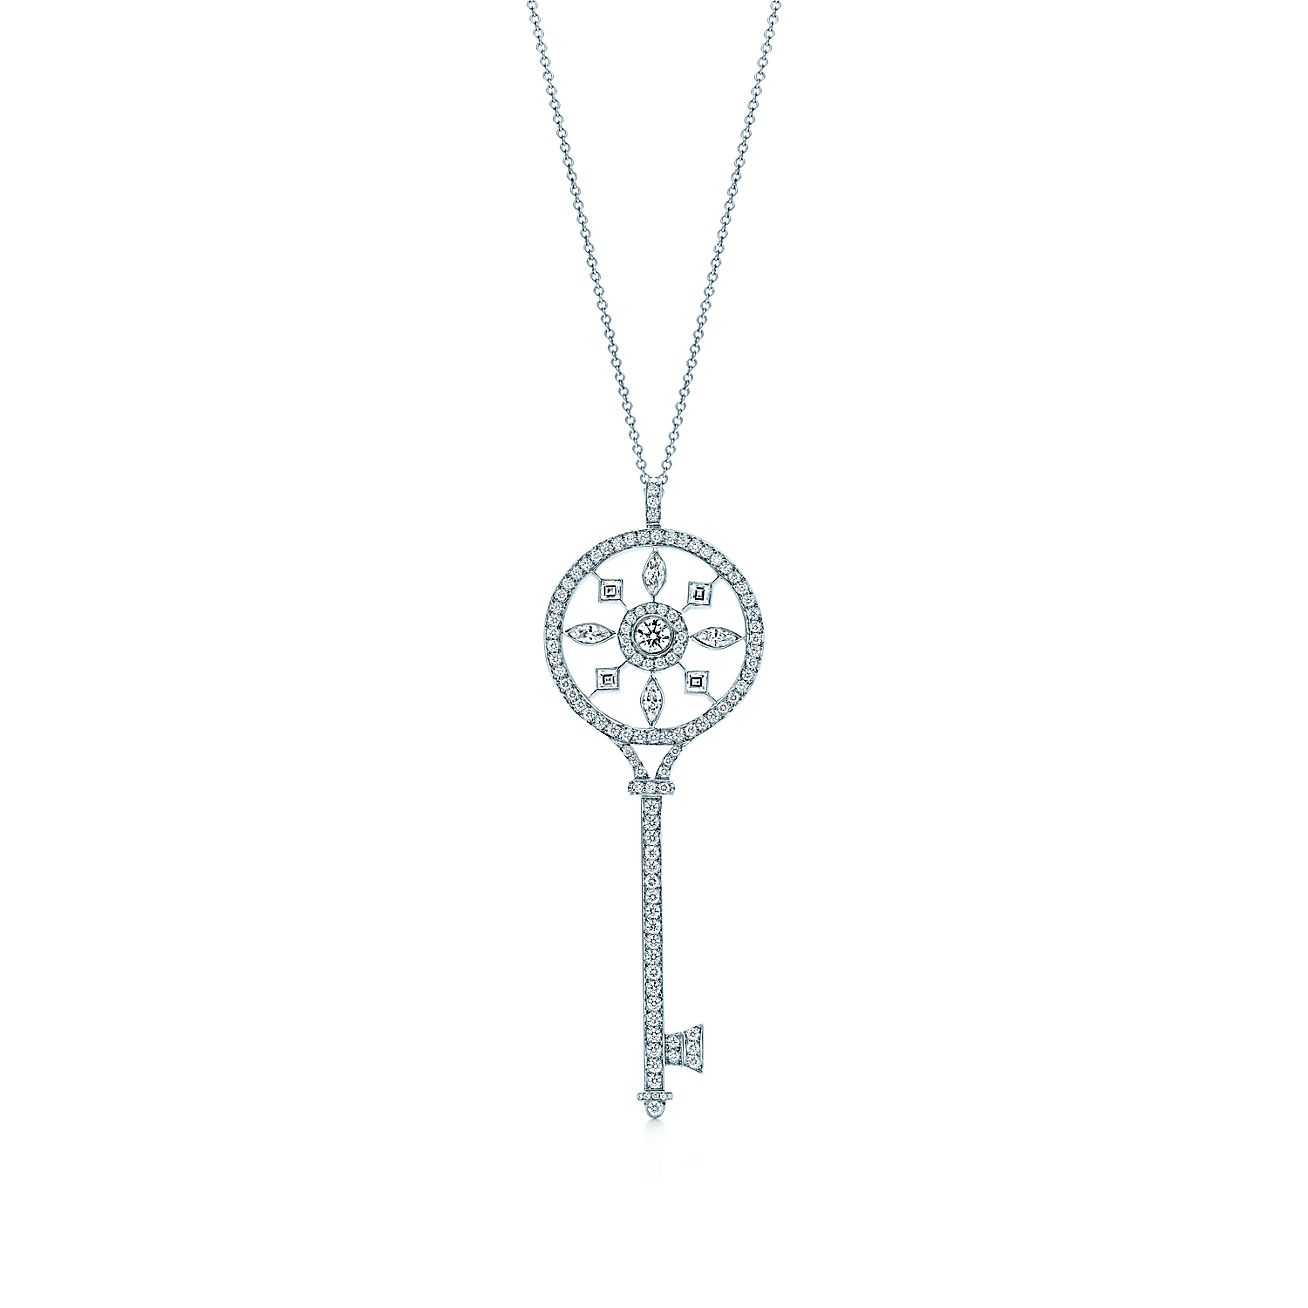 Tiffany keys round kaleidoscope key pendant with diamonds in tiffany keys kaleidoscope key pendant aloadofball Gallery